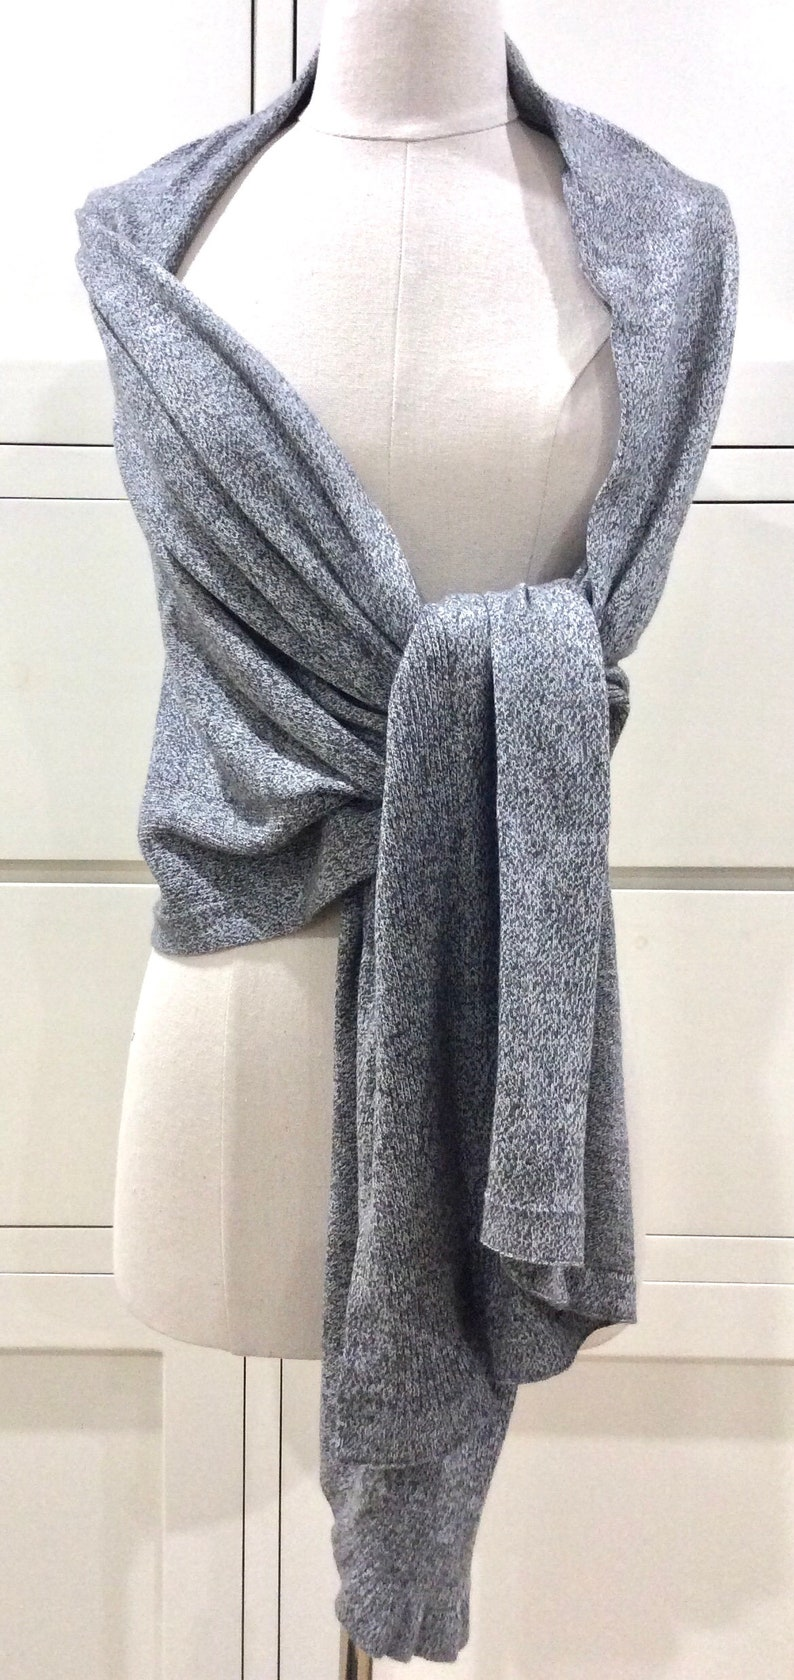 100/% Cotton Multi-way Poncho Textured GreyTravel AccessoryAll SeasonsWomen/'s wrapCover-up Gift Wrapped Gift for Her